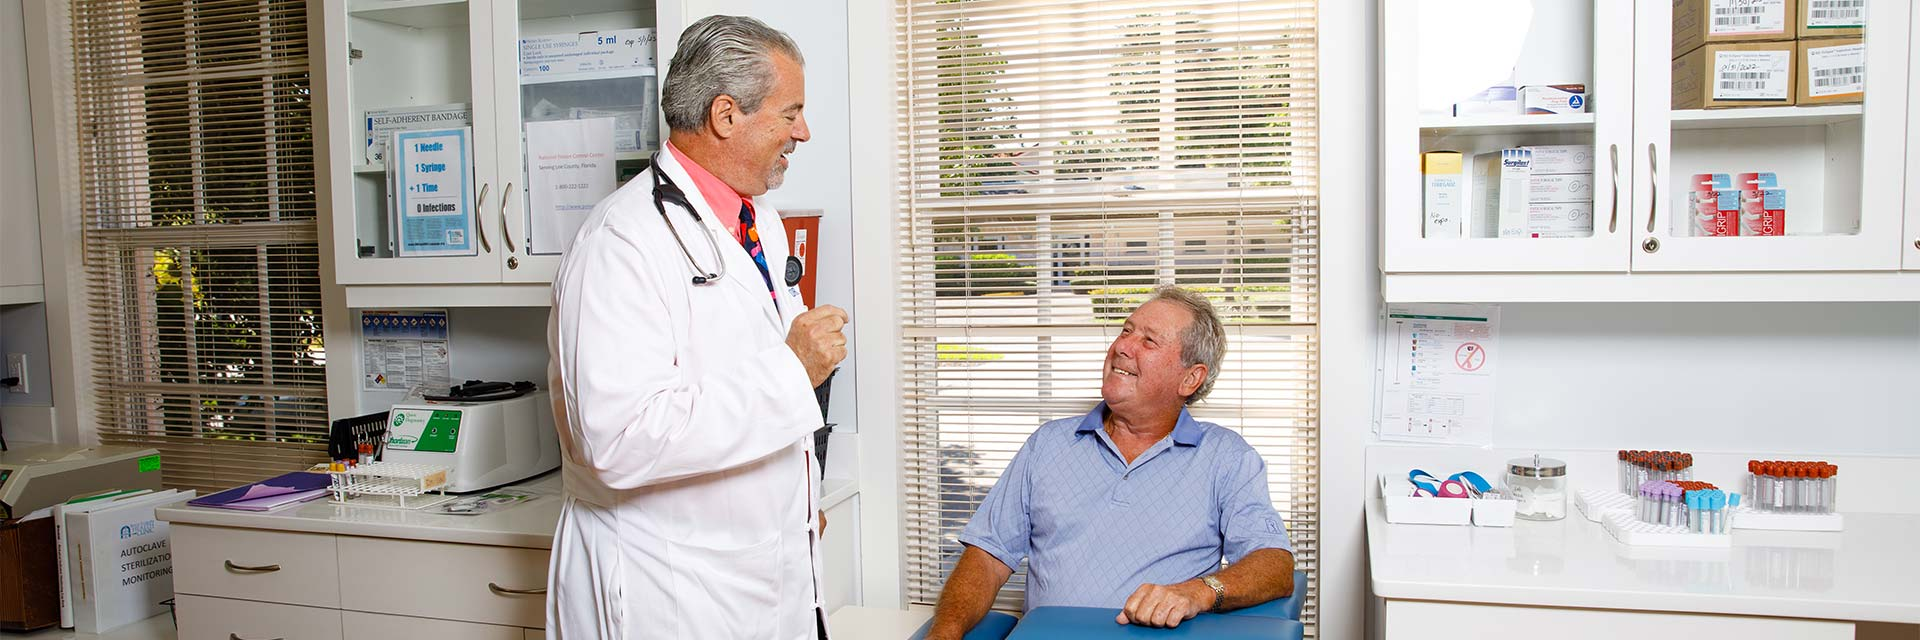 Dr. James with a male patient